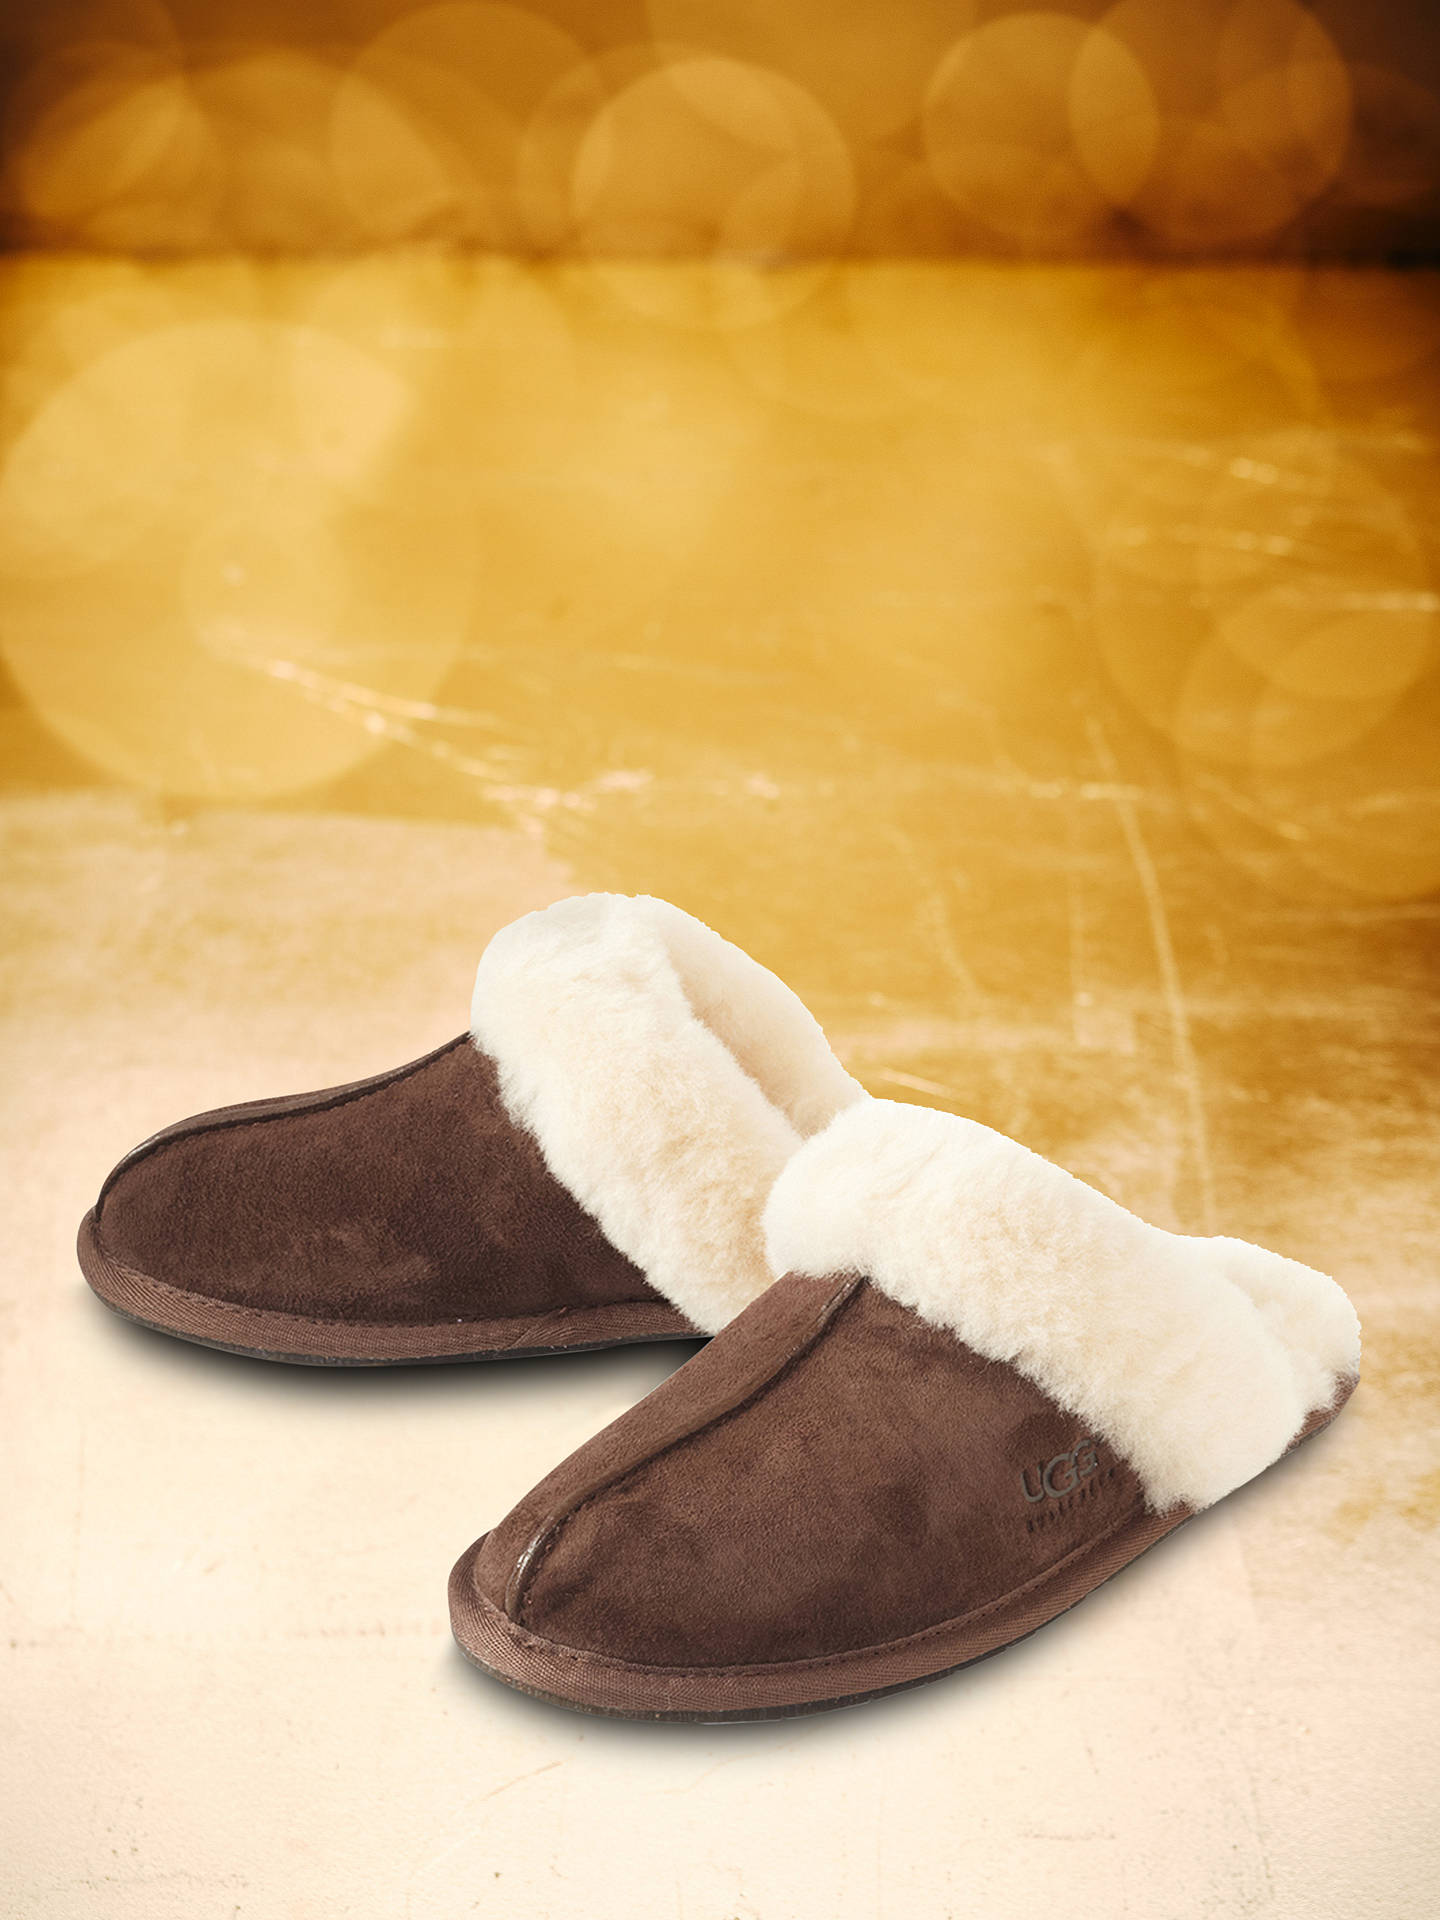 BuyUGG Scuffette II Sheepskin Slippers, Dark Brown, 3 Online at johnlewis.com